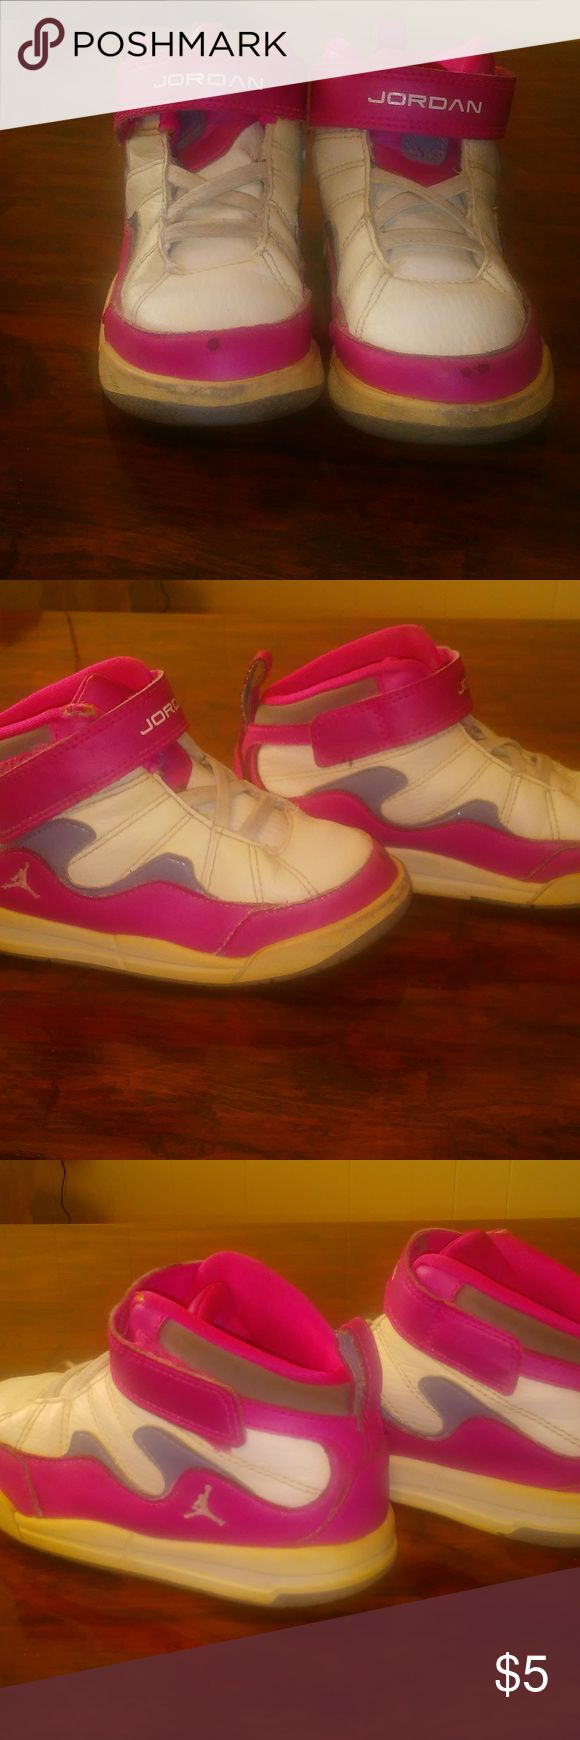 Size 10C white and pink girls jordans Used Size 10C white and pink girls jordans Air Jordan Shoes Sneakers